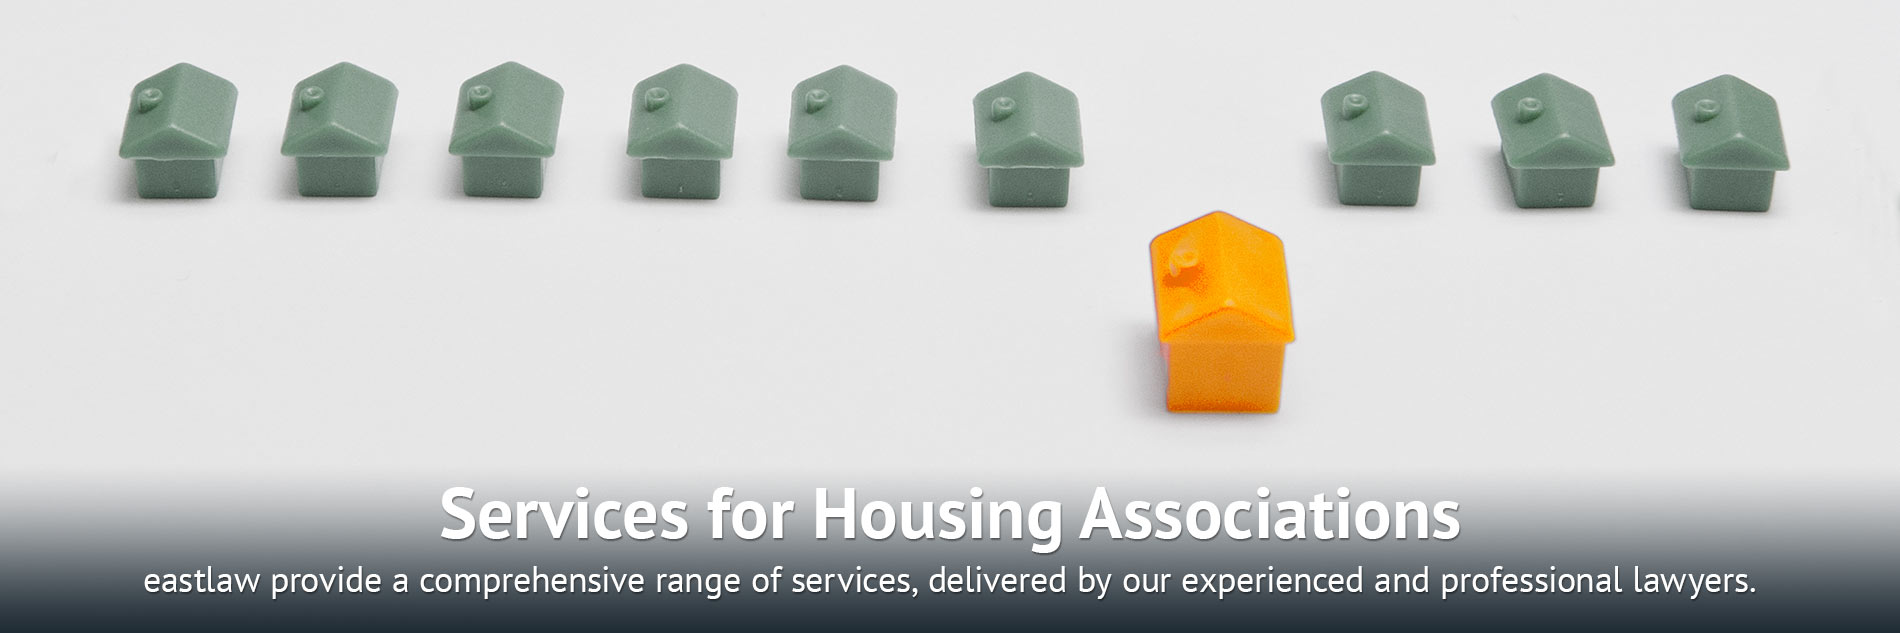 Services for Housing Associations: eastlaw provide a comprehensive range of services, delivered by our experienced and professional lawyers.